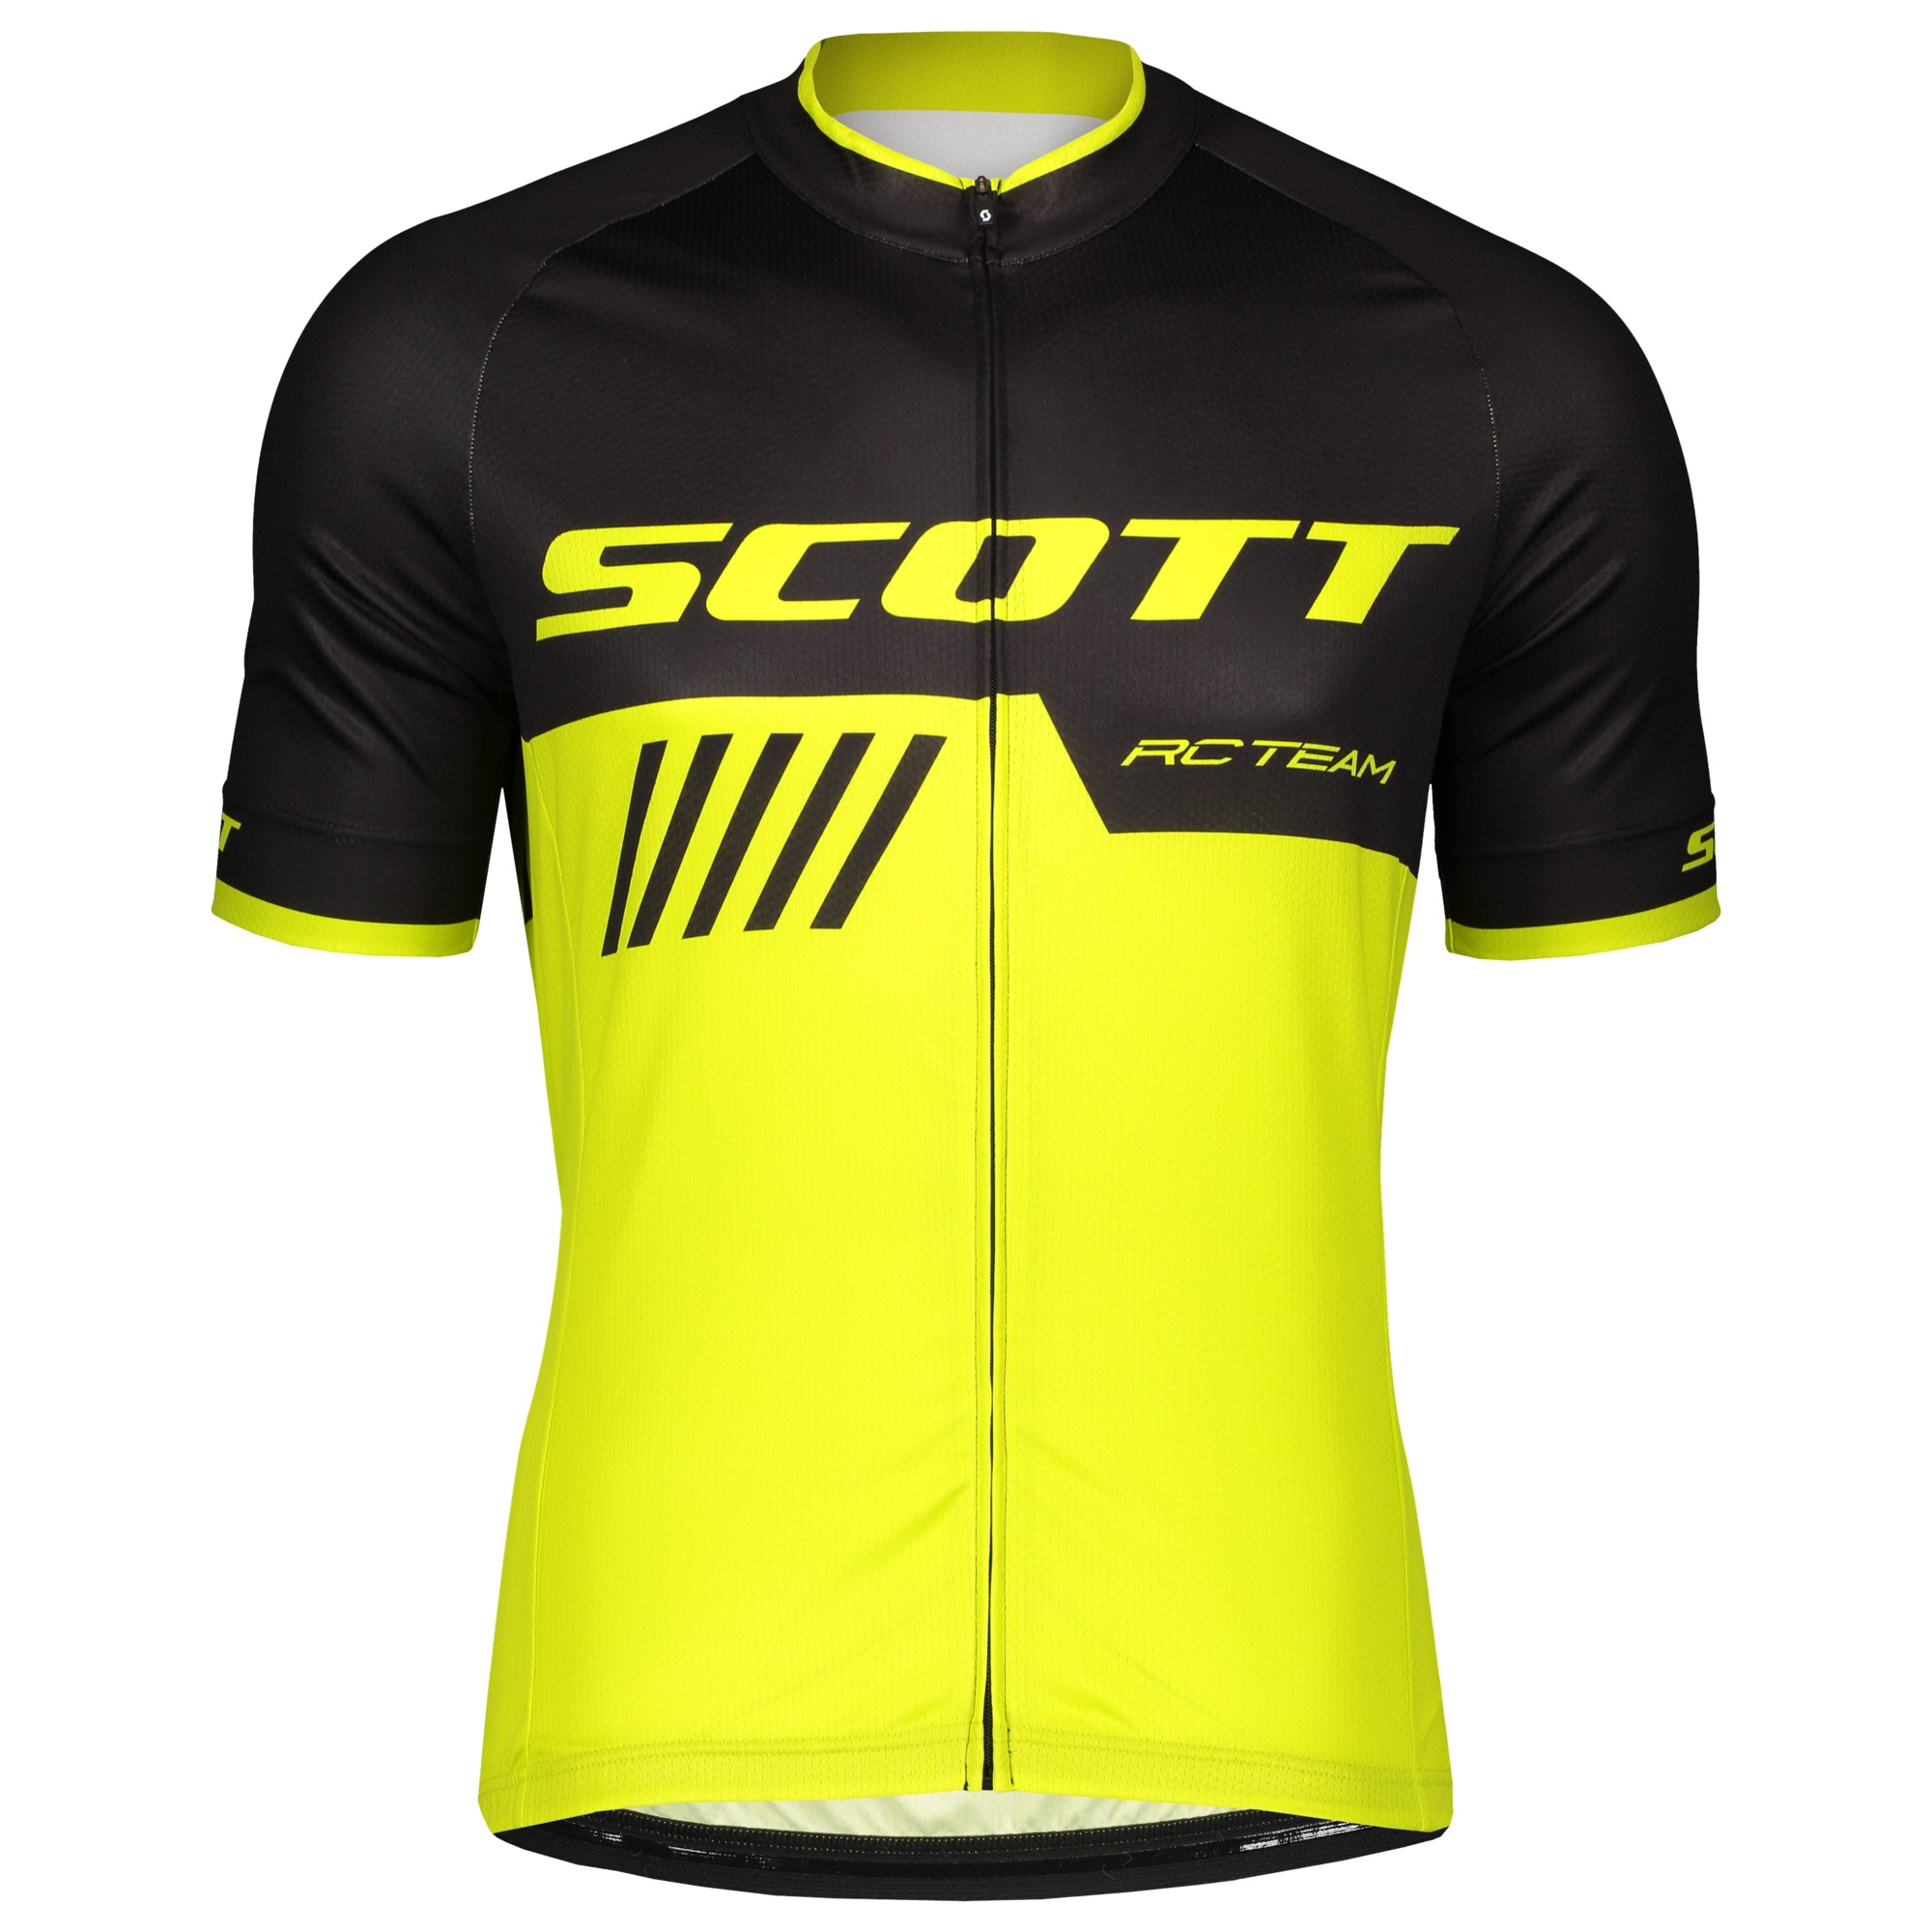 Джерси с коротким рукавом SCOTT RC Team 10 Black/Yellow 2019